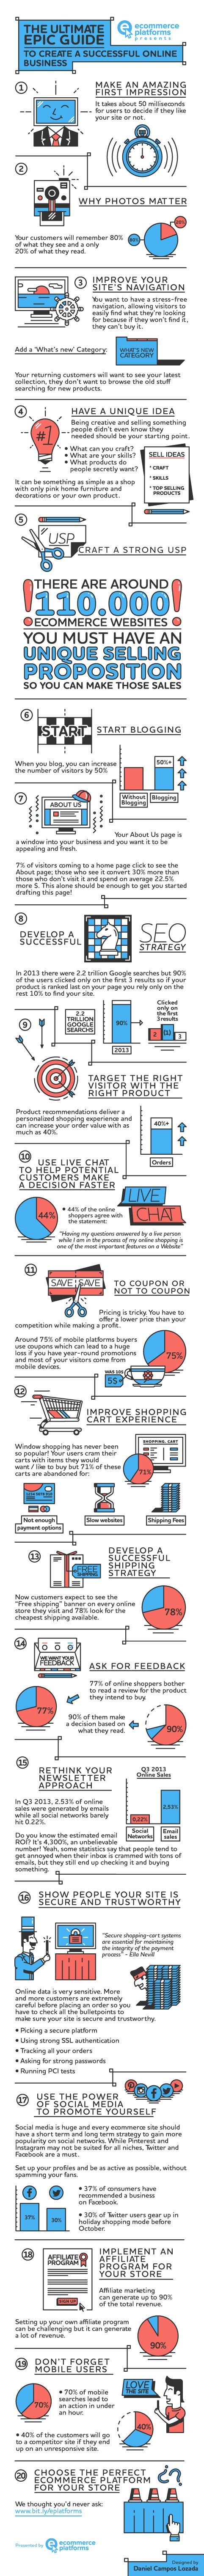 We stumbled upon this awesome infographic by eCommerce Platforms that we think you'll find really useful for your store in 2016. These strategies will help you focus on what you should do to succeed—from targeting the right customer to having a stellar social media selling strategy.